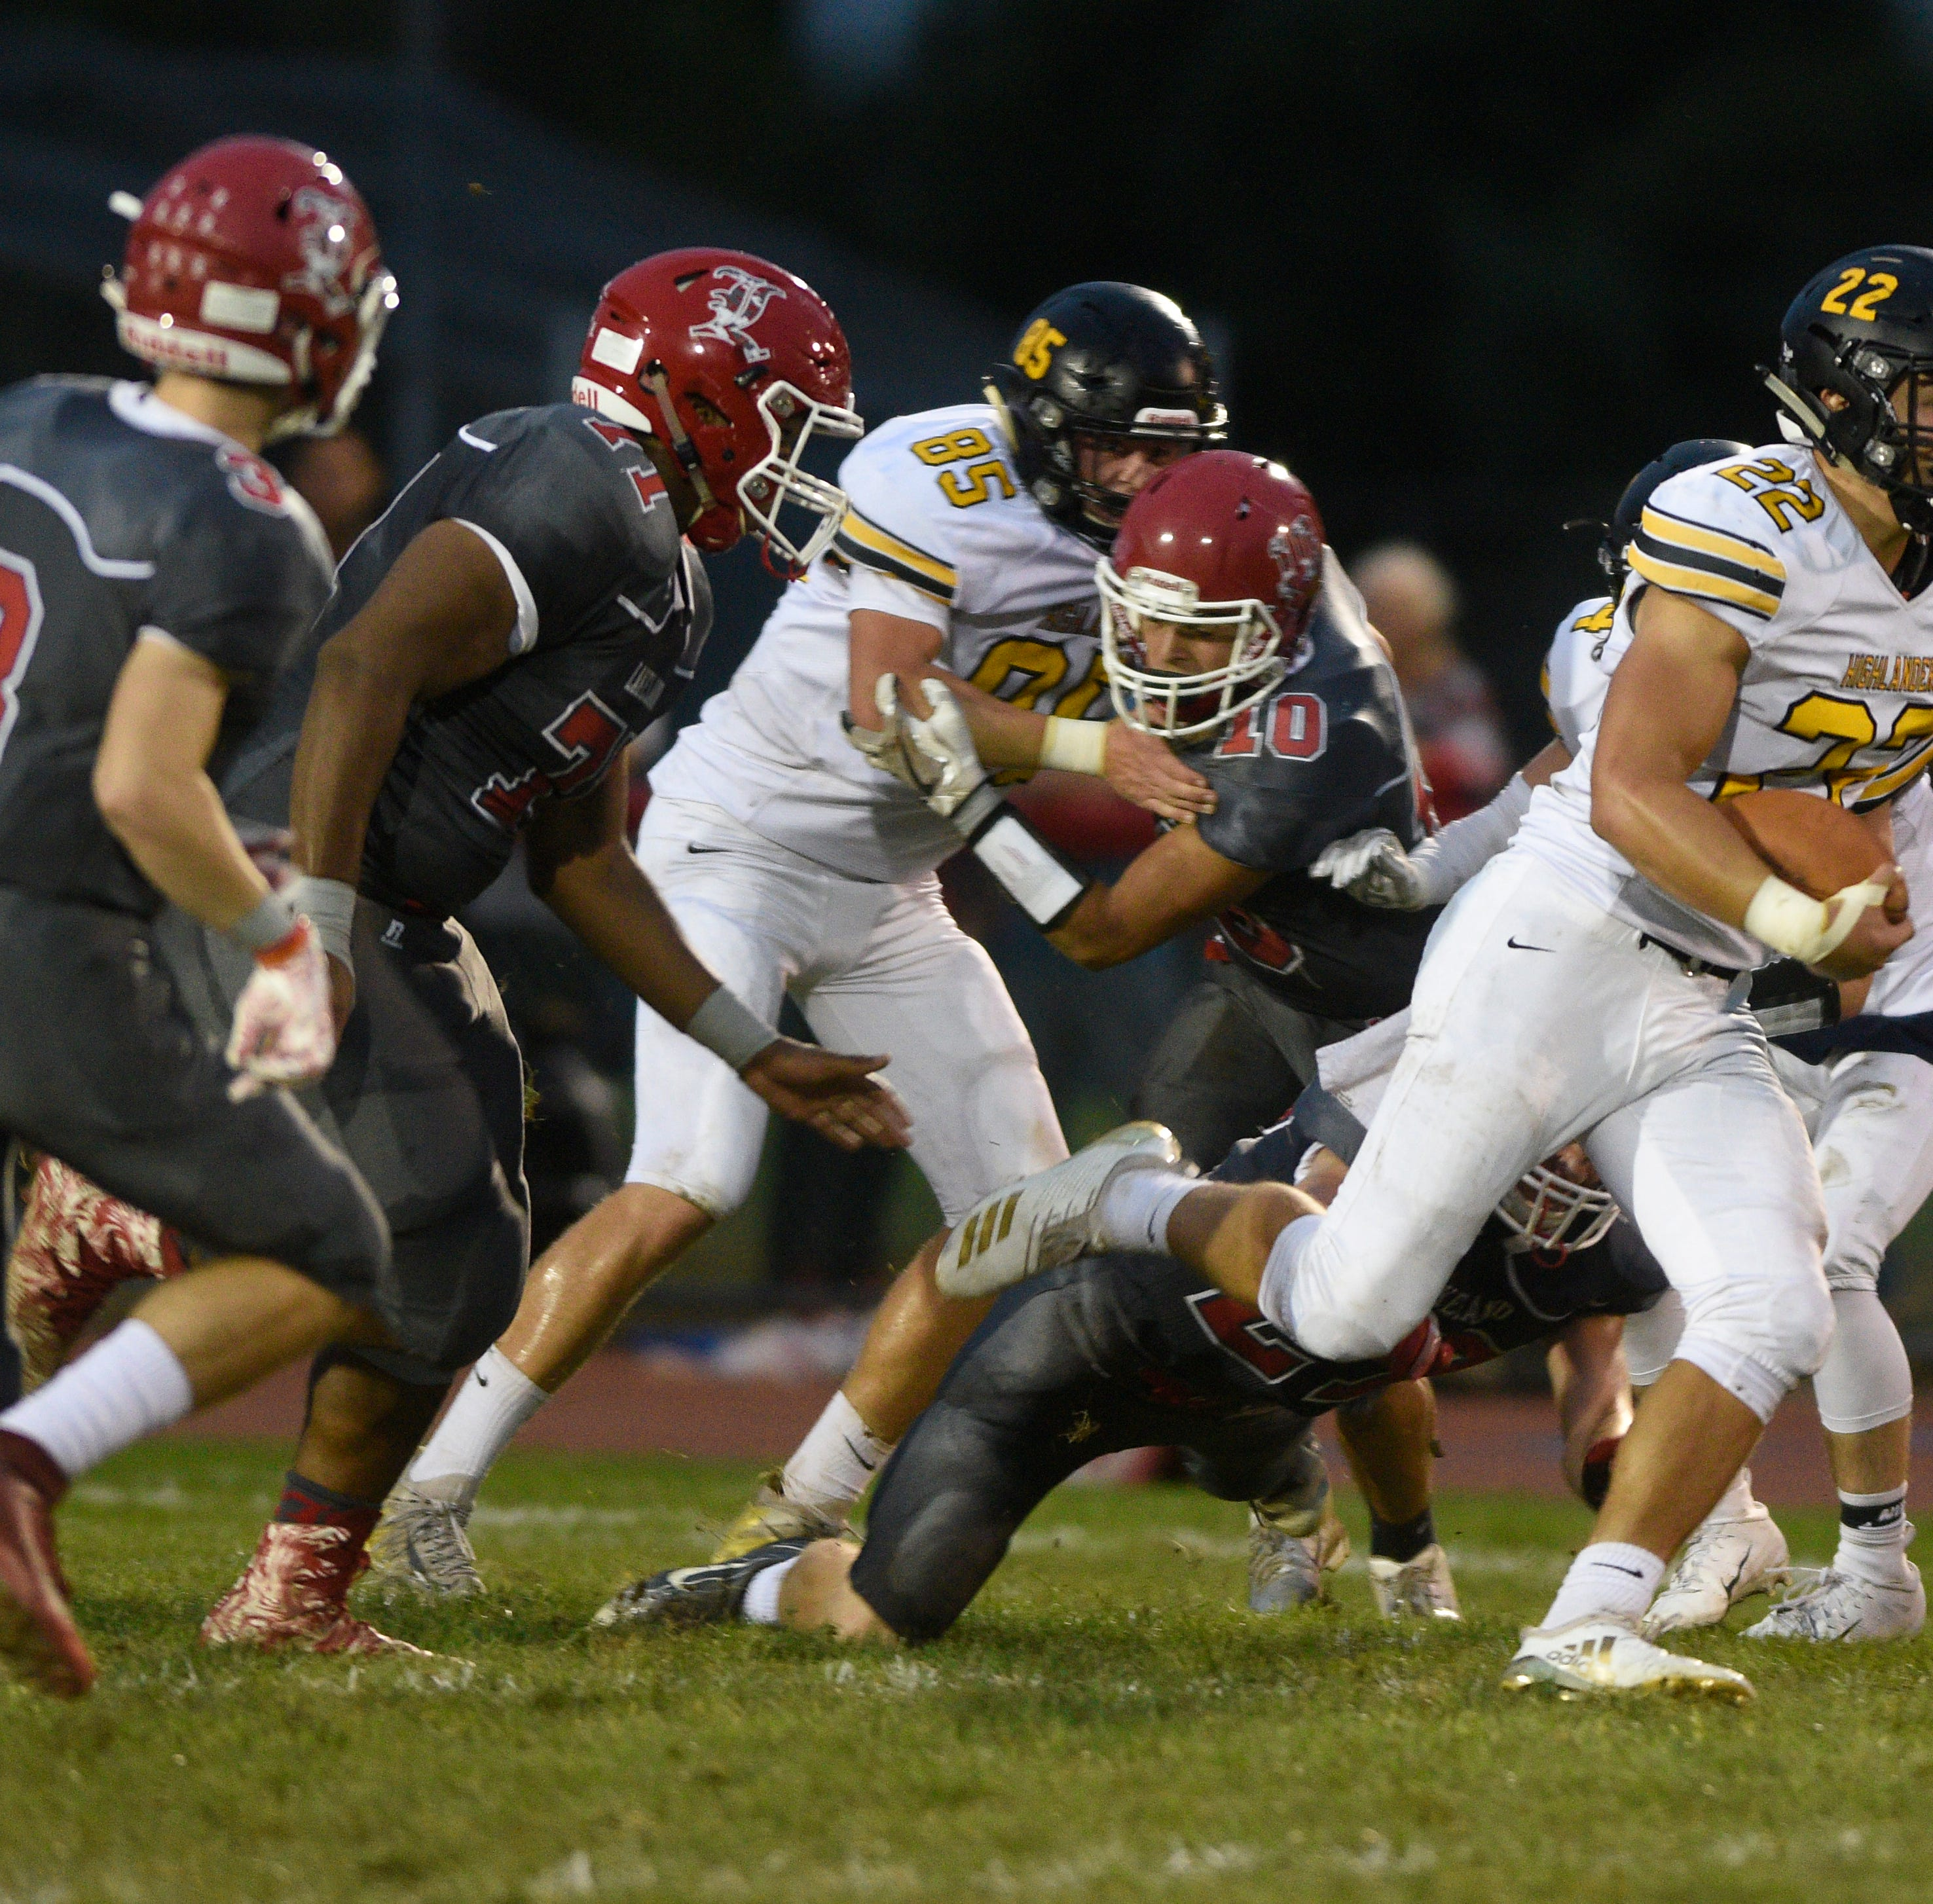 Vote for North Jersey Football Player of the Week for Week 3